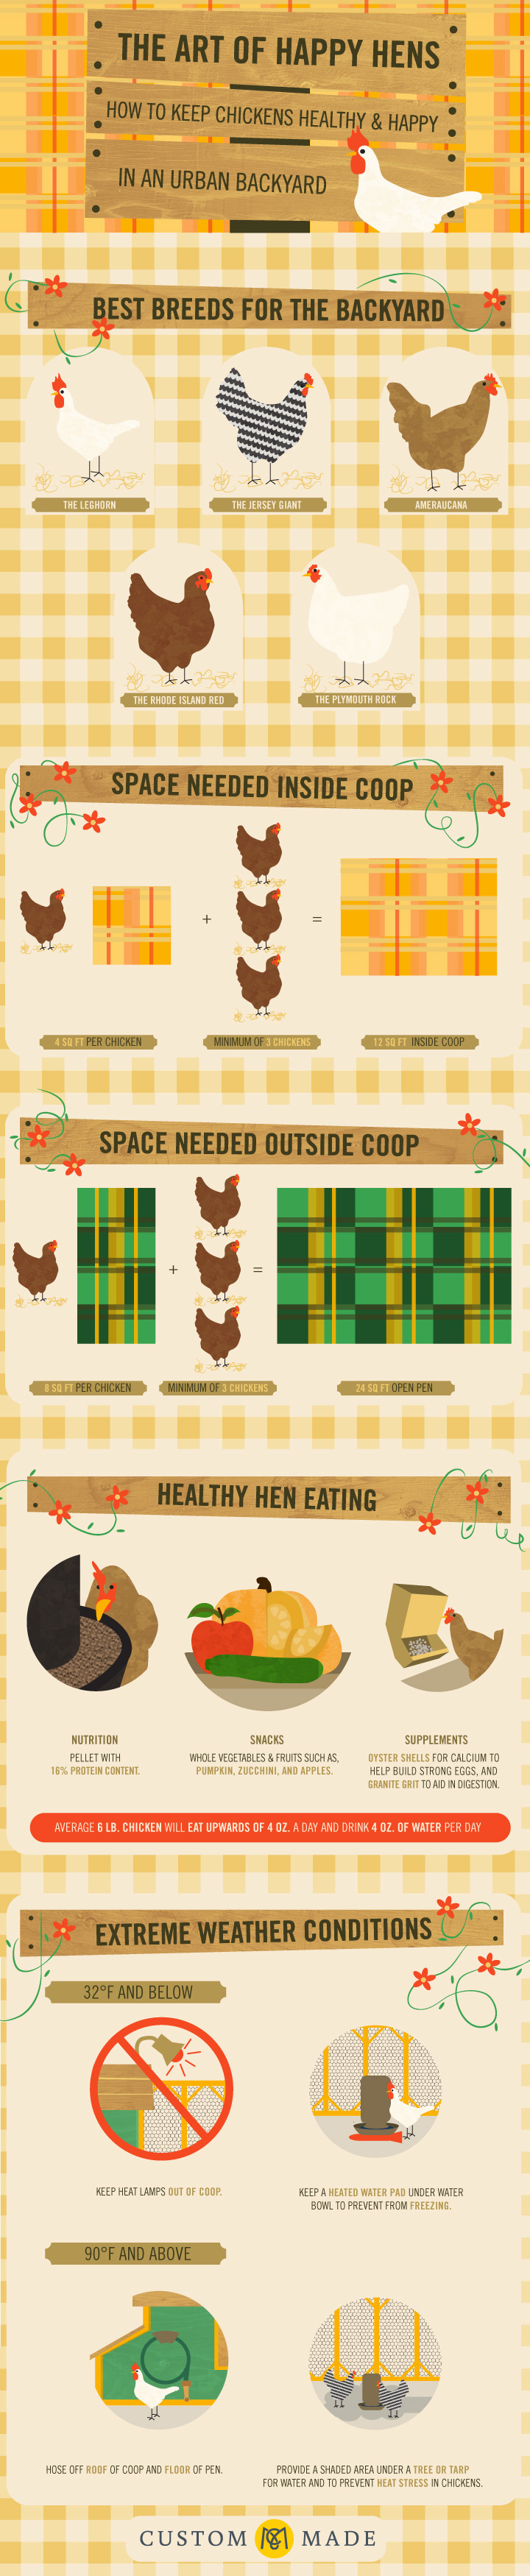 The Art of Happy Hens — How to Keep Chickens Healthy and Happy in An Urban Backyard